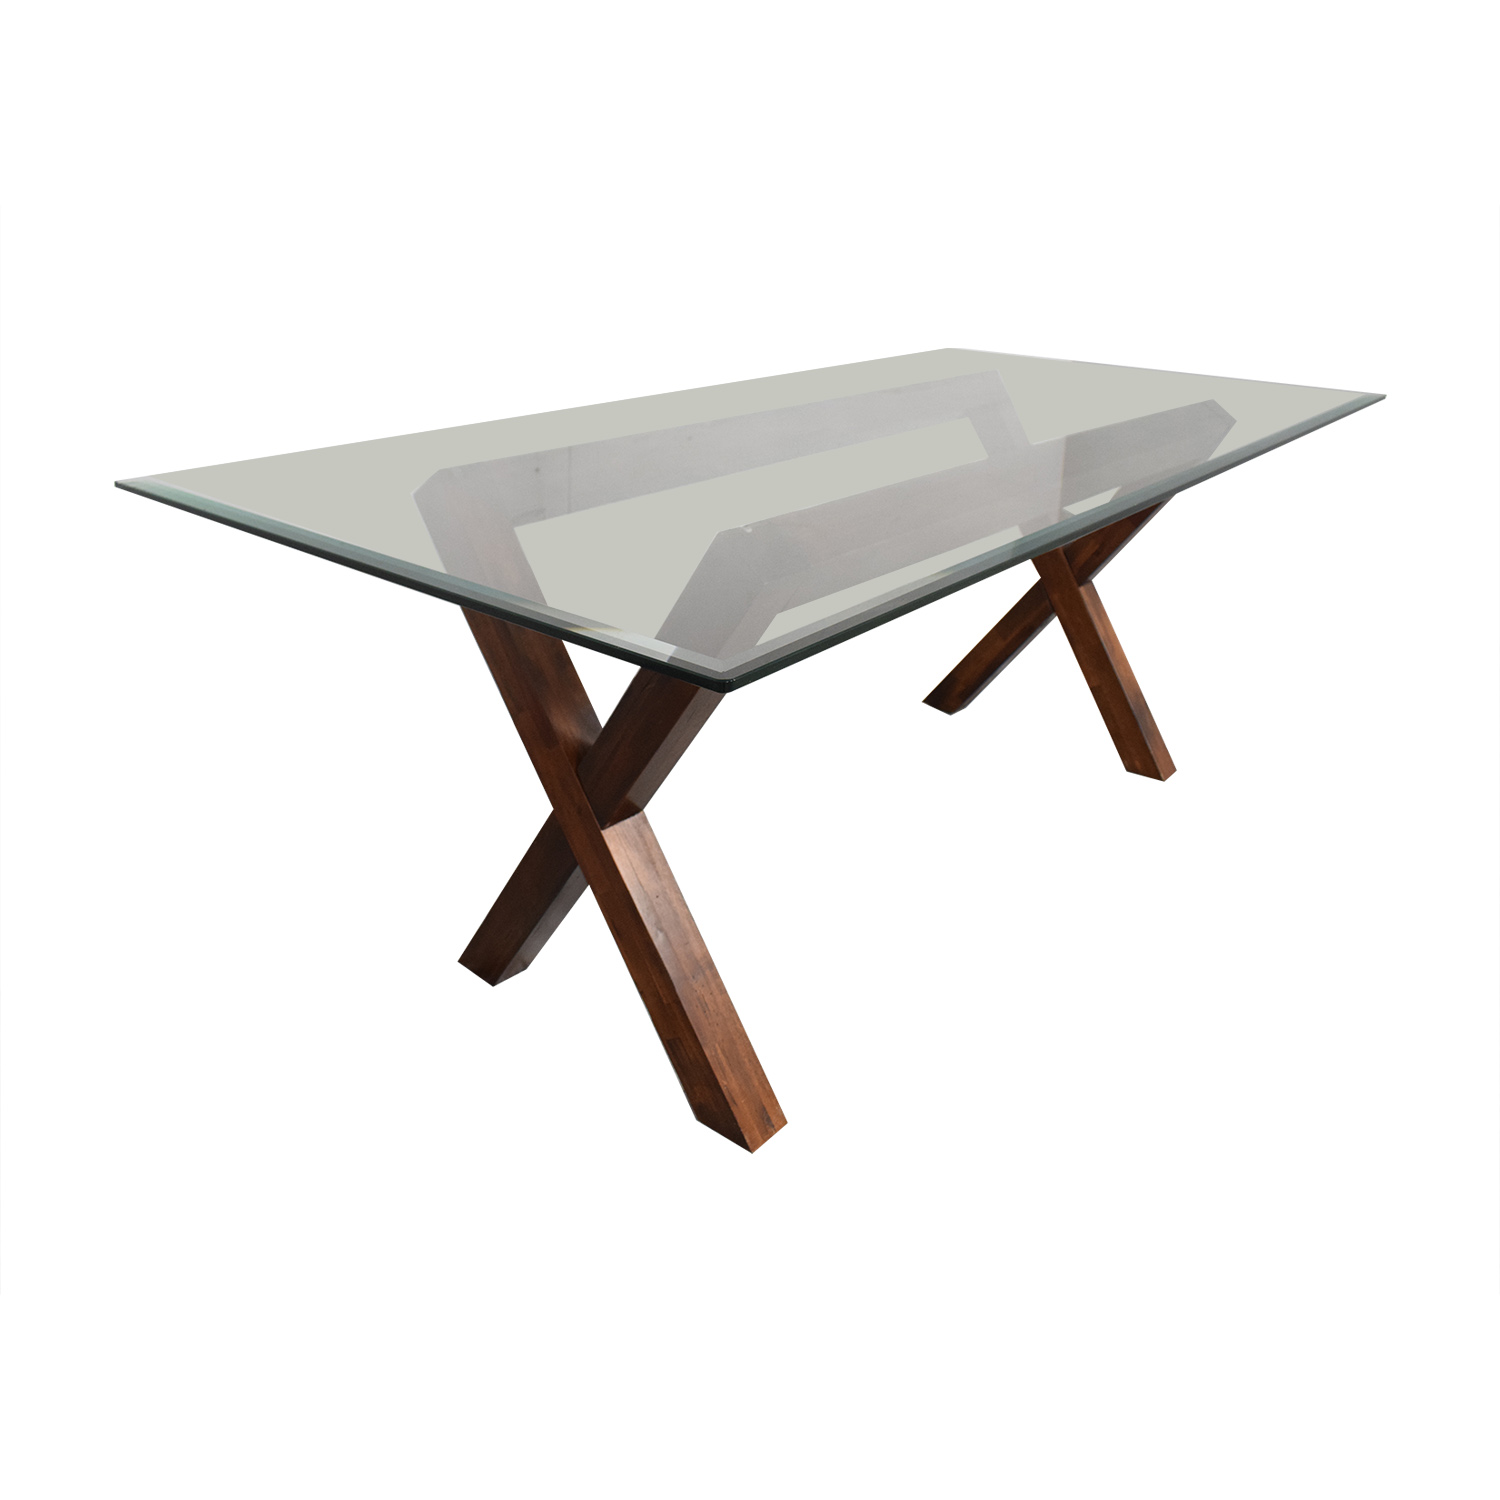 West Elm West Elm Transparent Dining Table pa